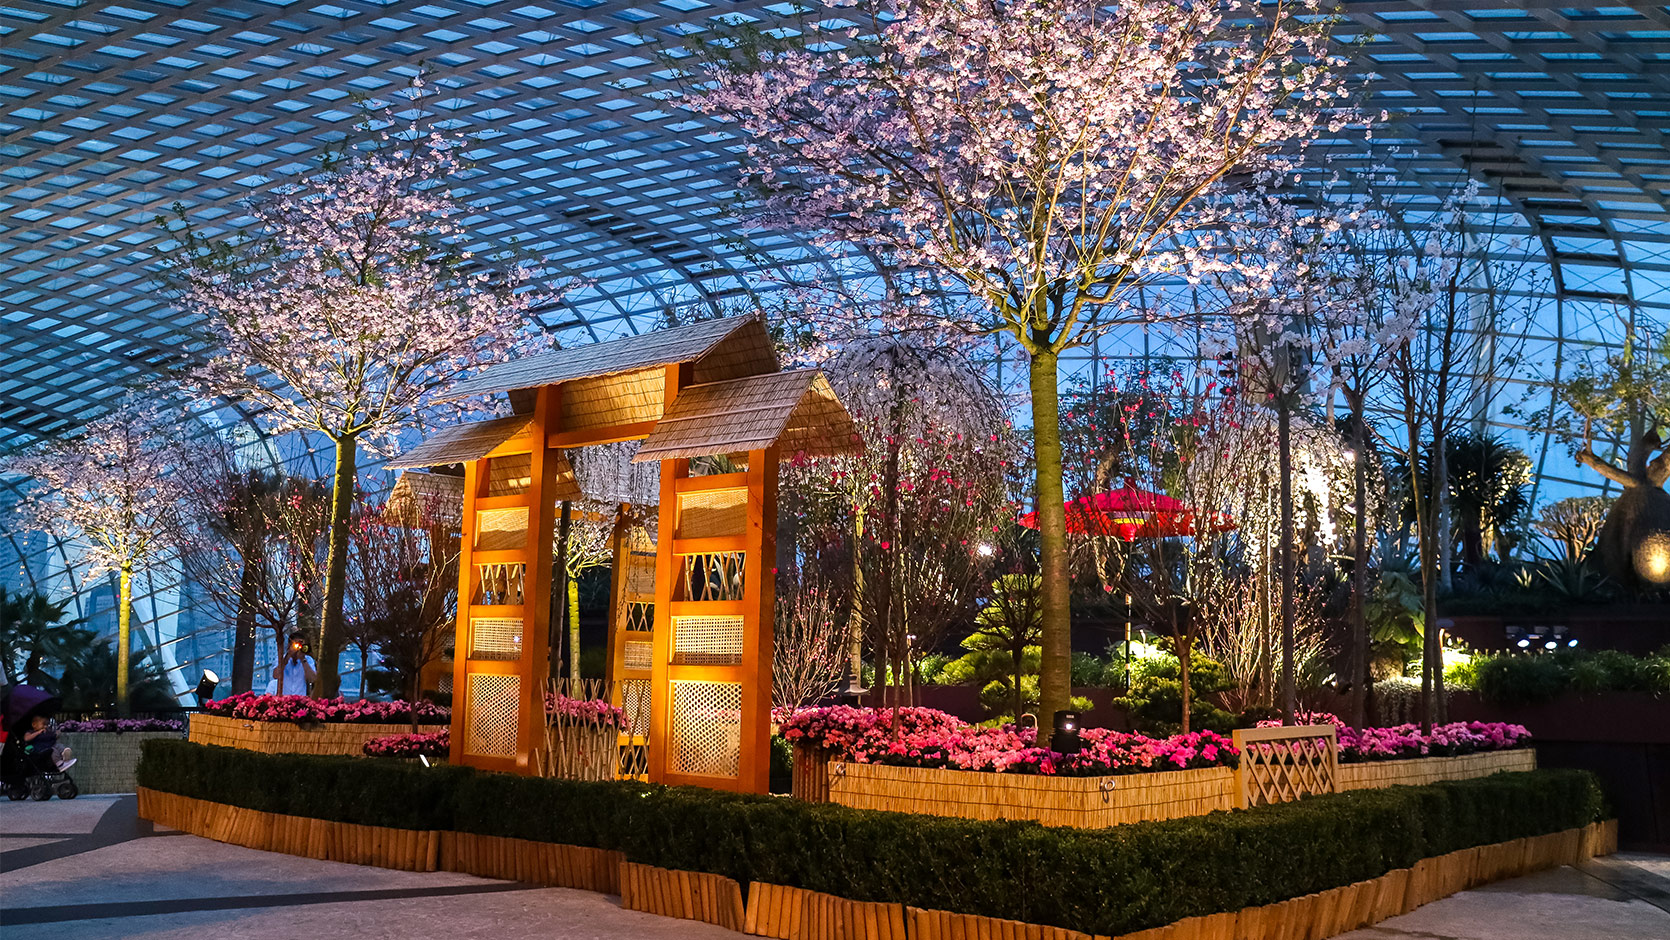 2016 blossom beats sakura floral display gardens by the bay